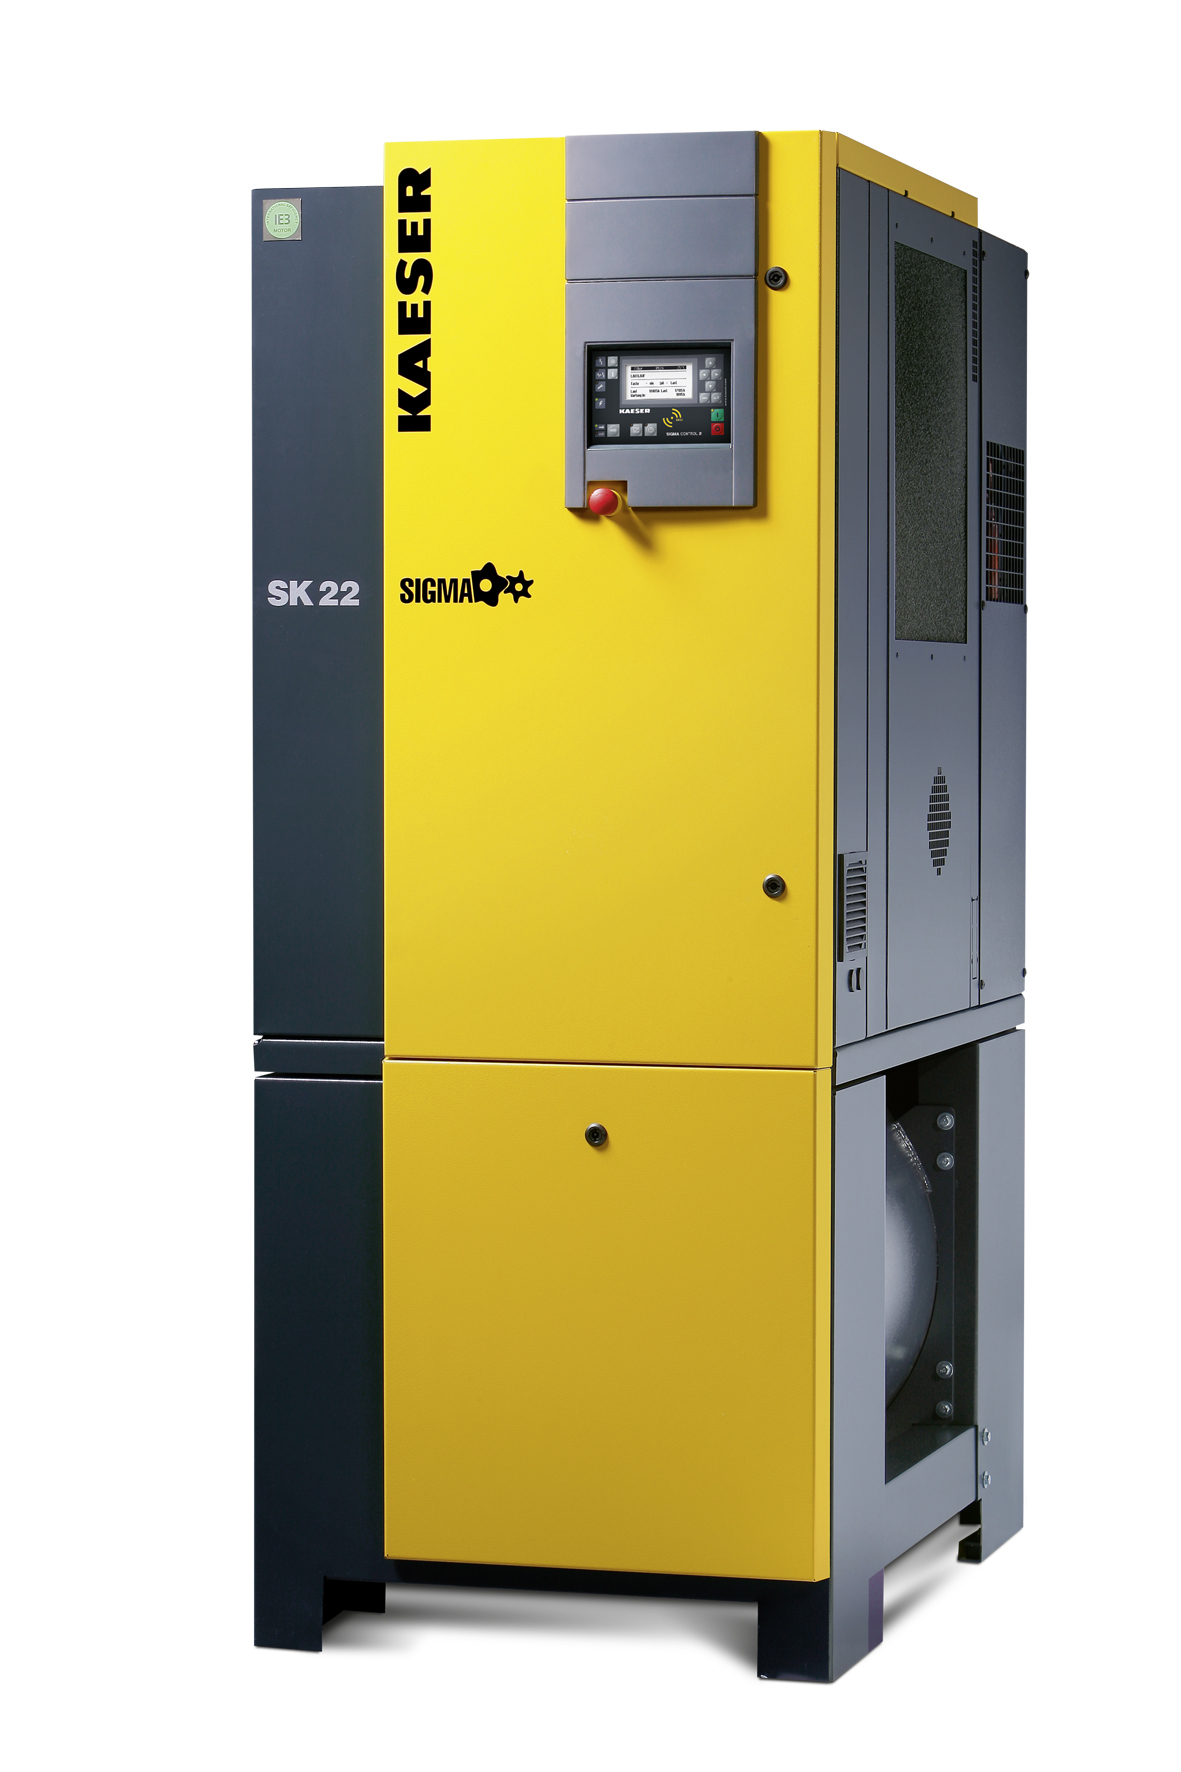 Kaeser Presents The Sk Rotary Screw Compressor Series